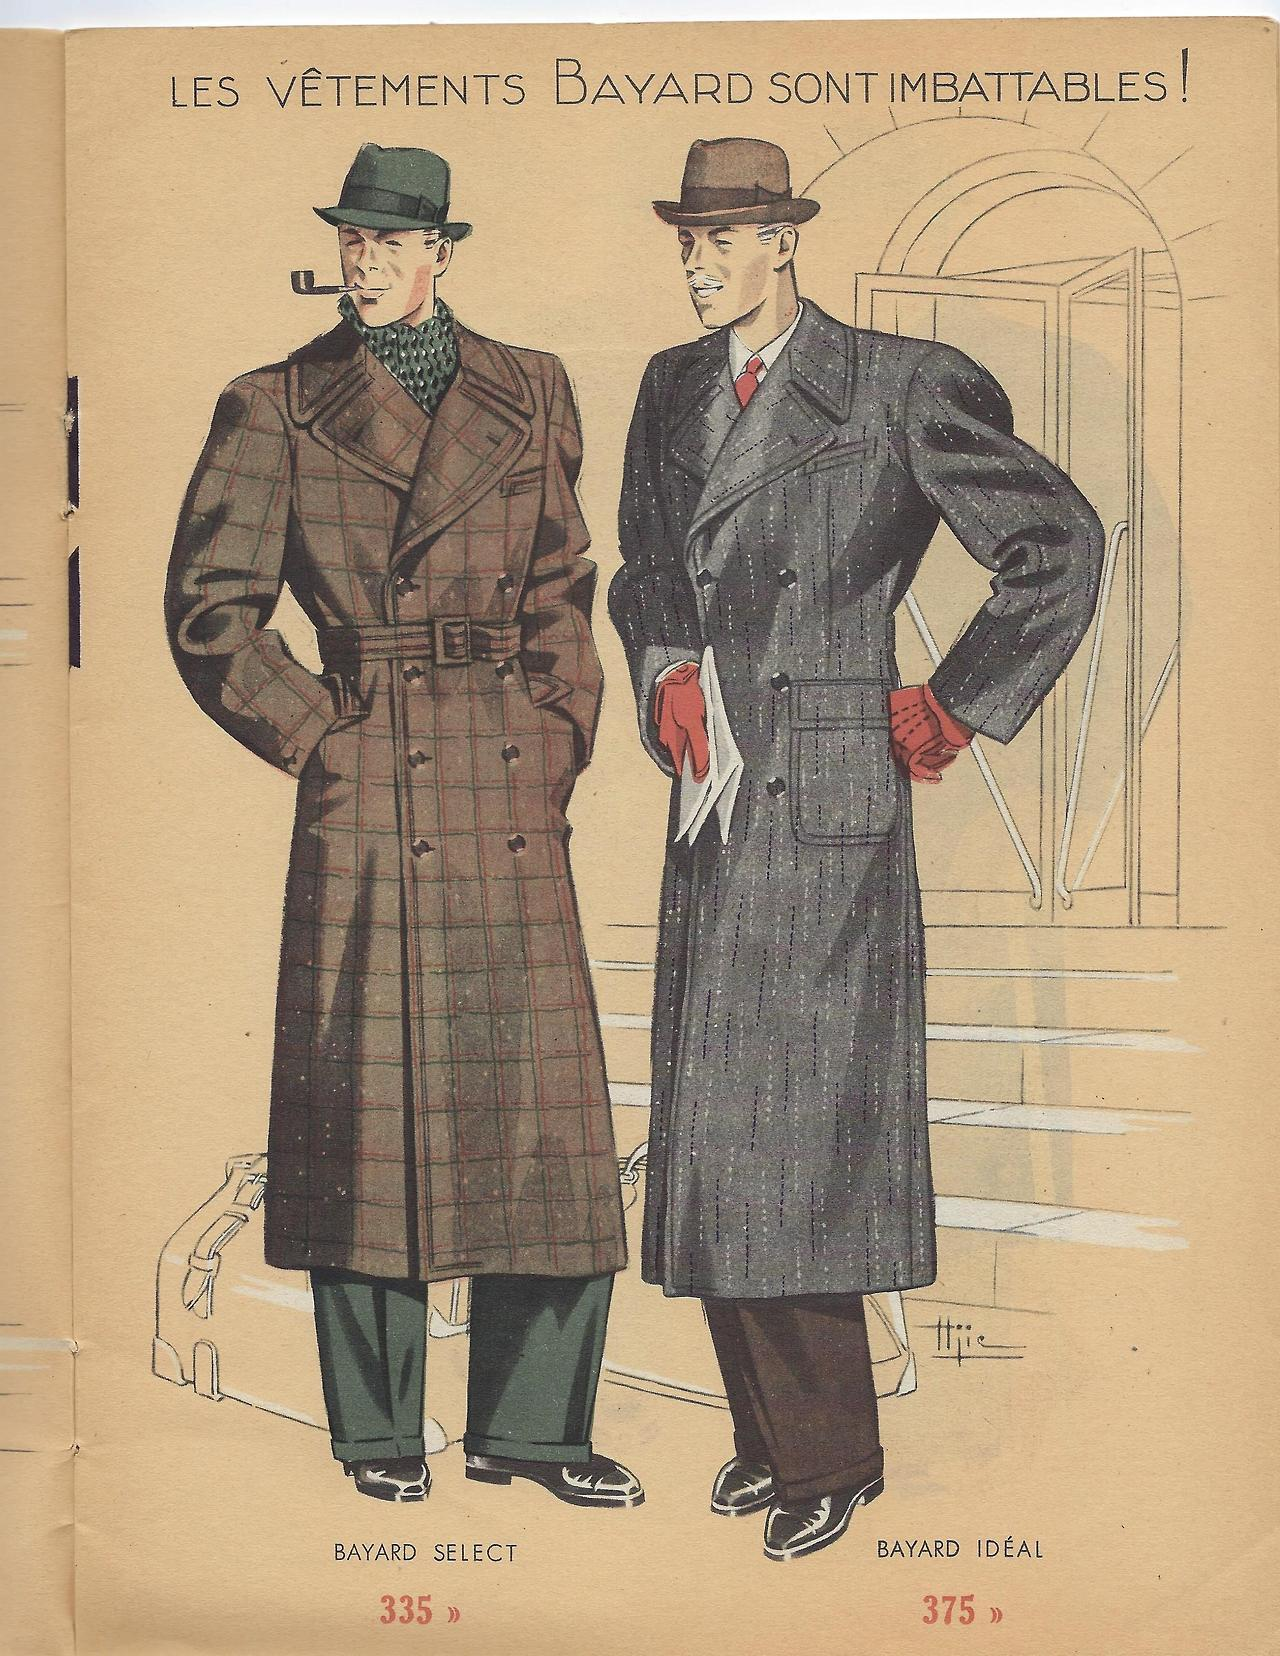 Bayard in the 1930s: Outerwear